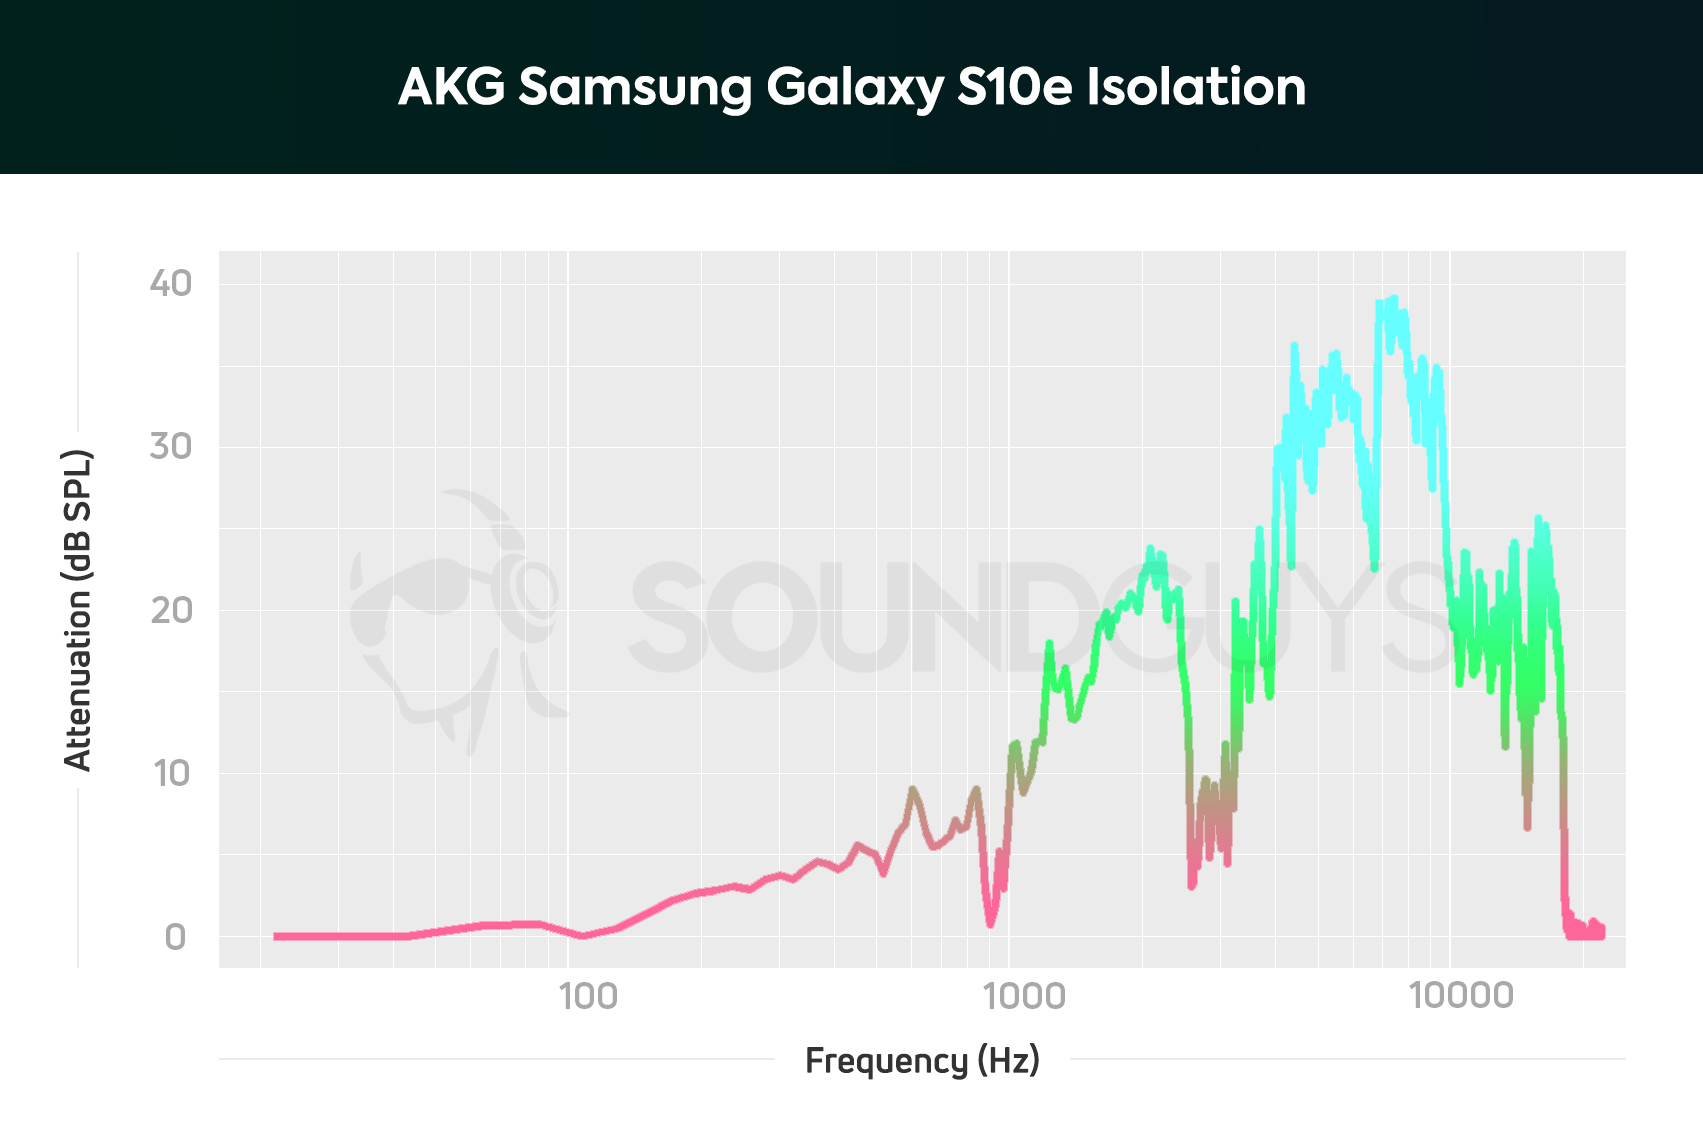 hight resolution of akg samsung galaxy s10e earbuds frequency isolation chart